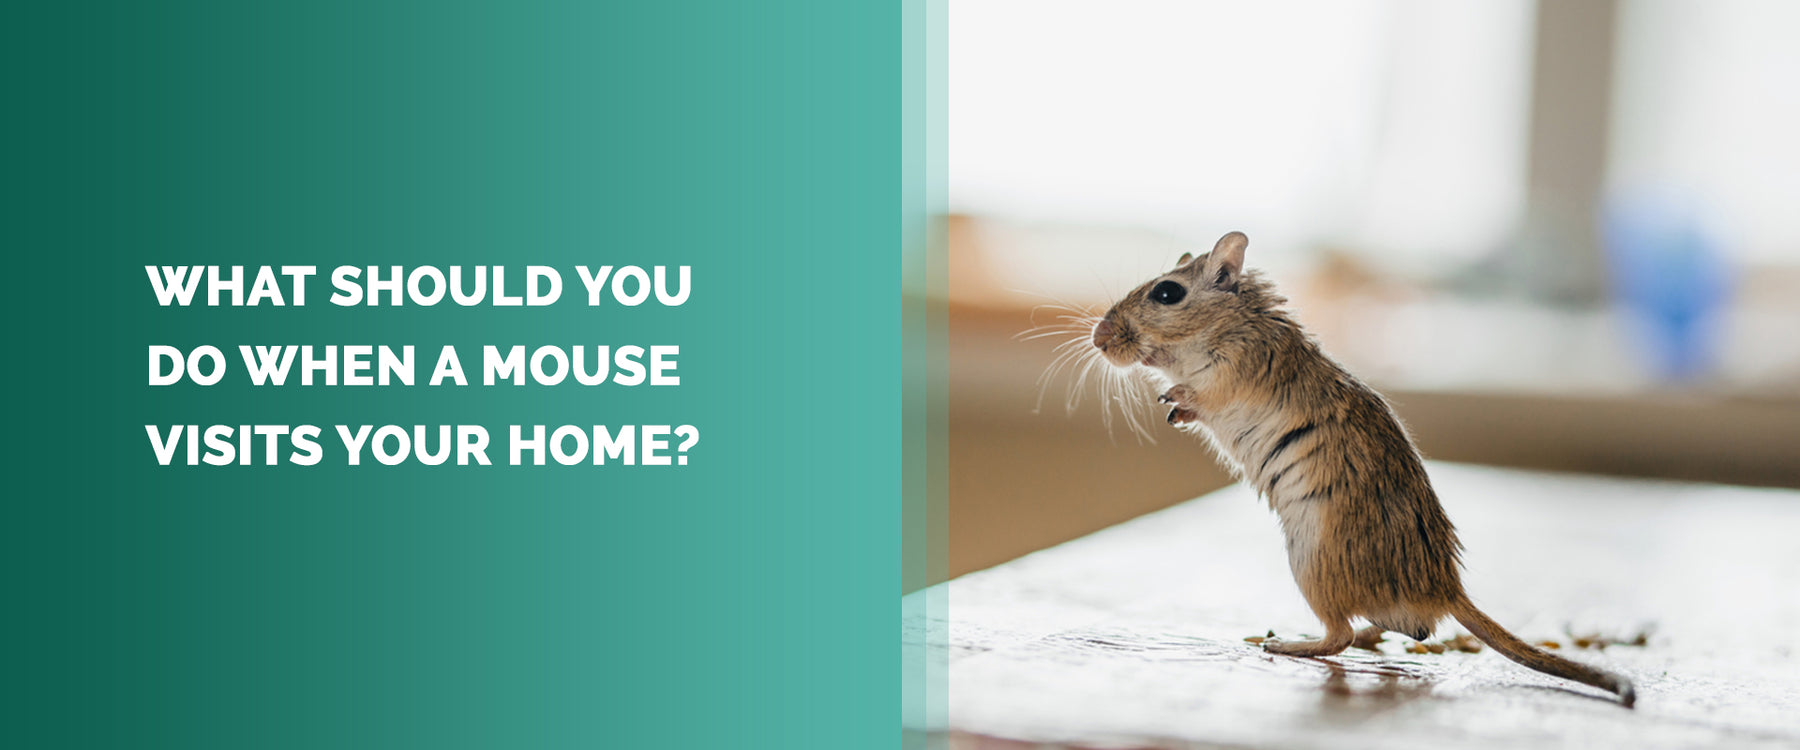 What Should You Do When A Mouse Visits Your Home?